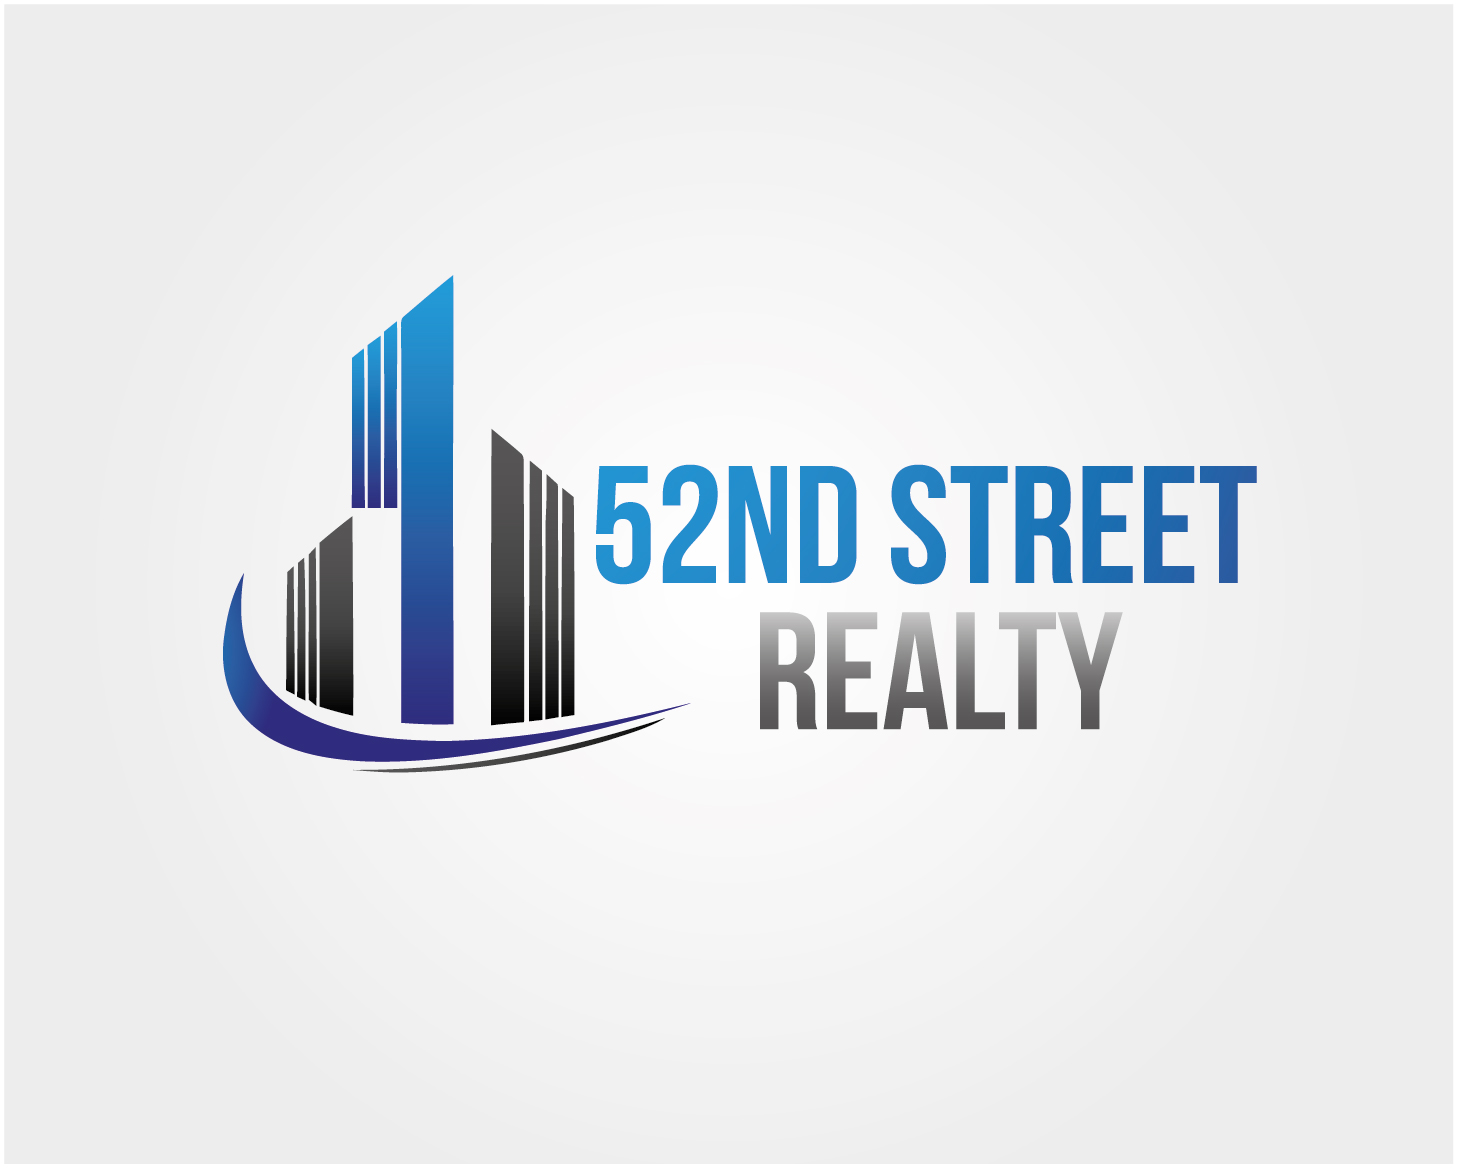 Logo Design by VENTSISLAV KOVACHEV - Entry No. 36 in the Logo Design Contest 52nd Street Realty Logo Design.